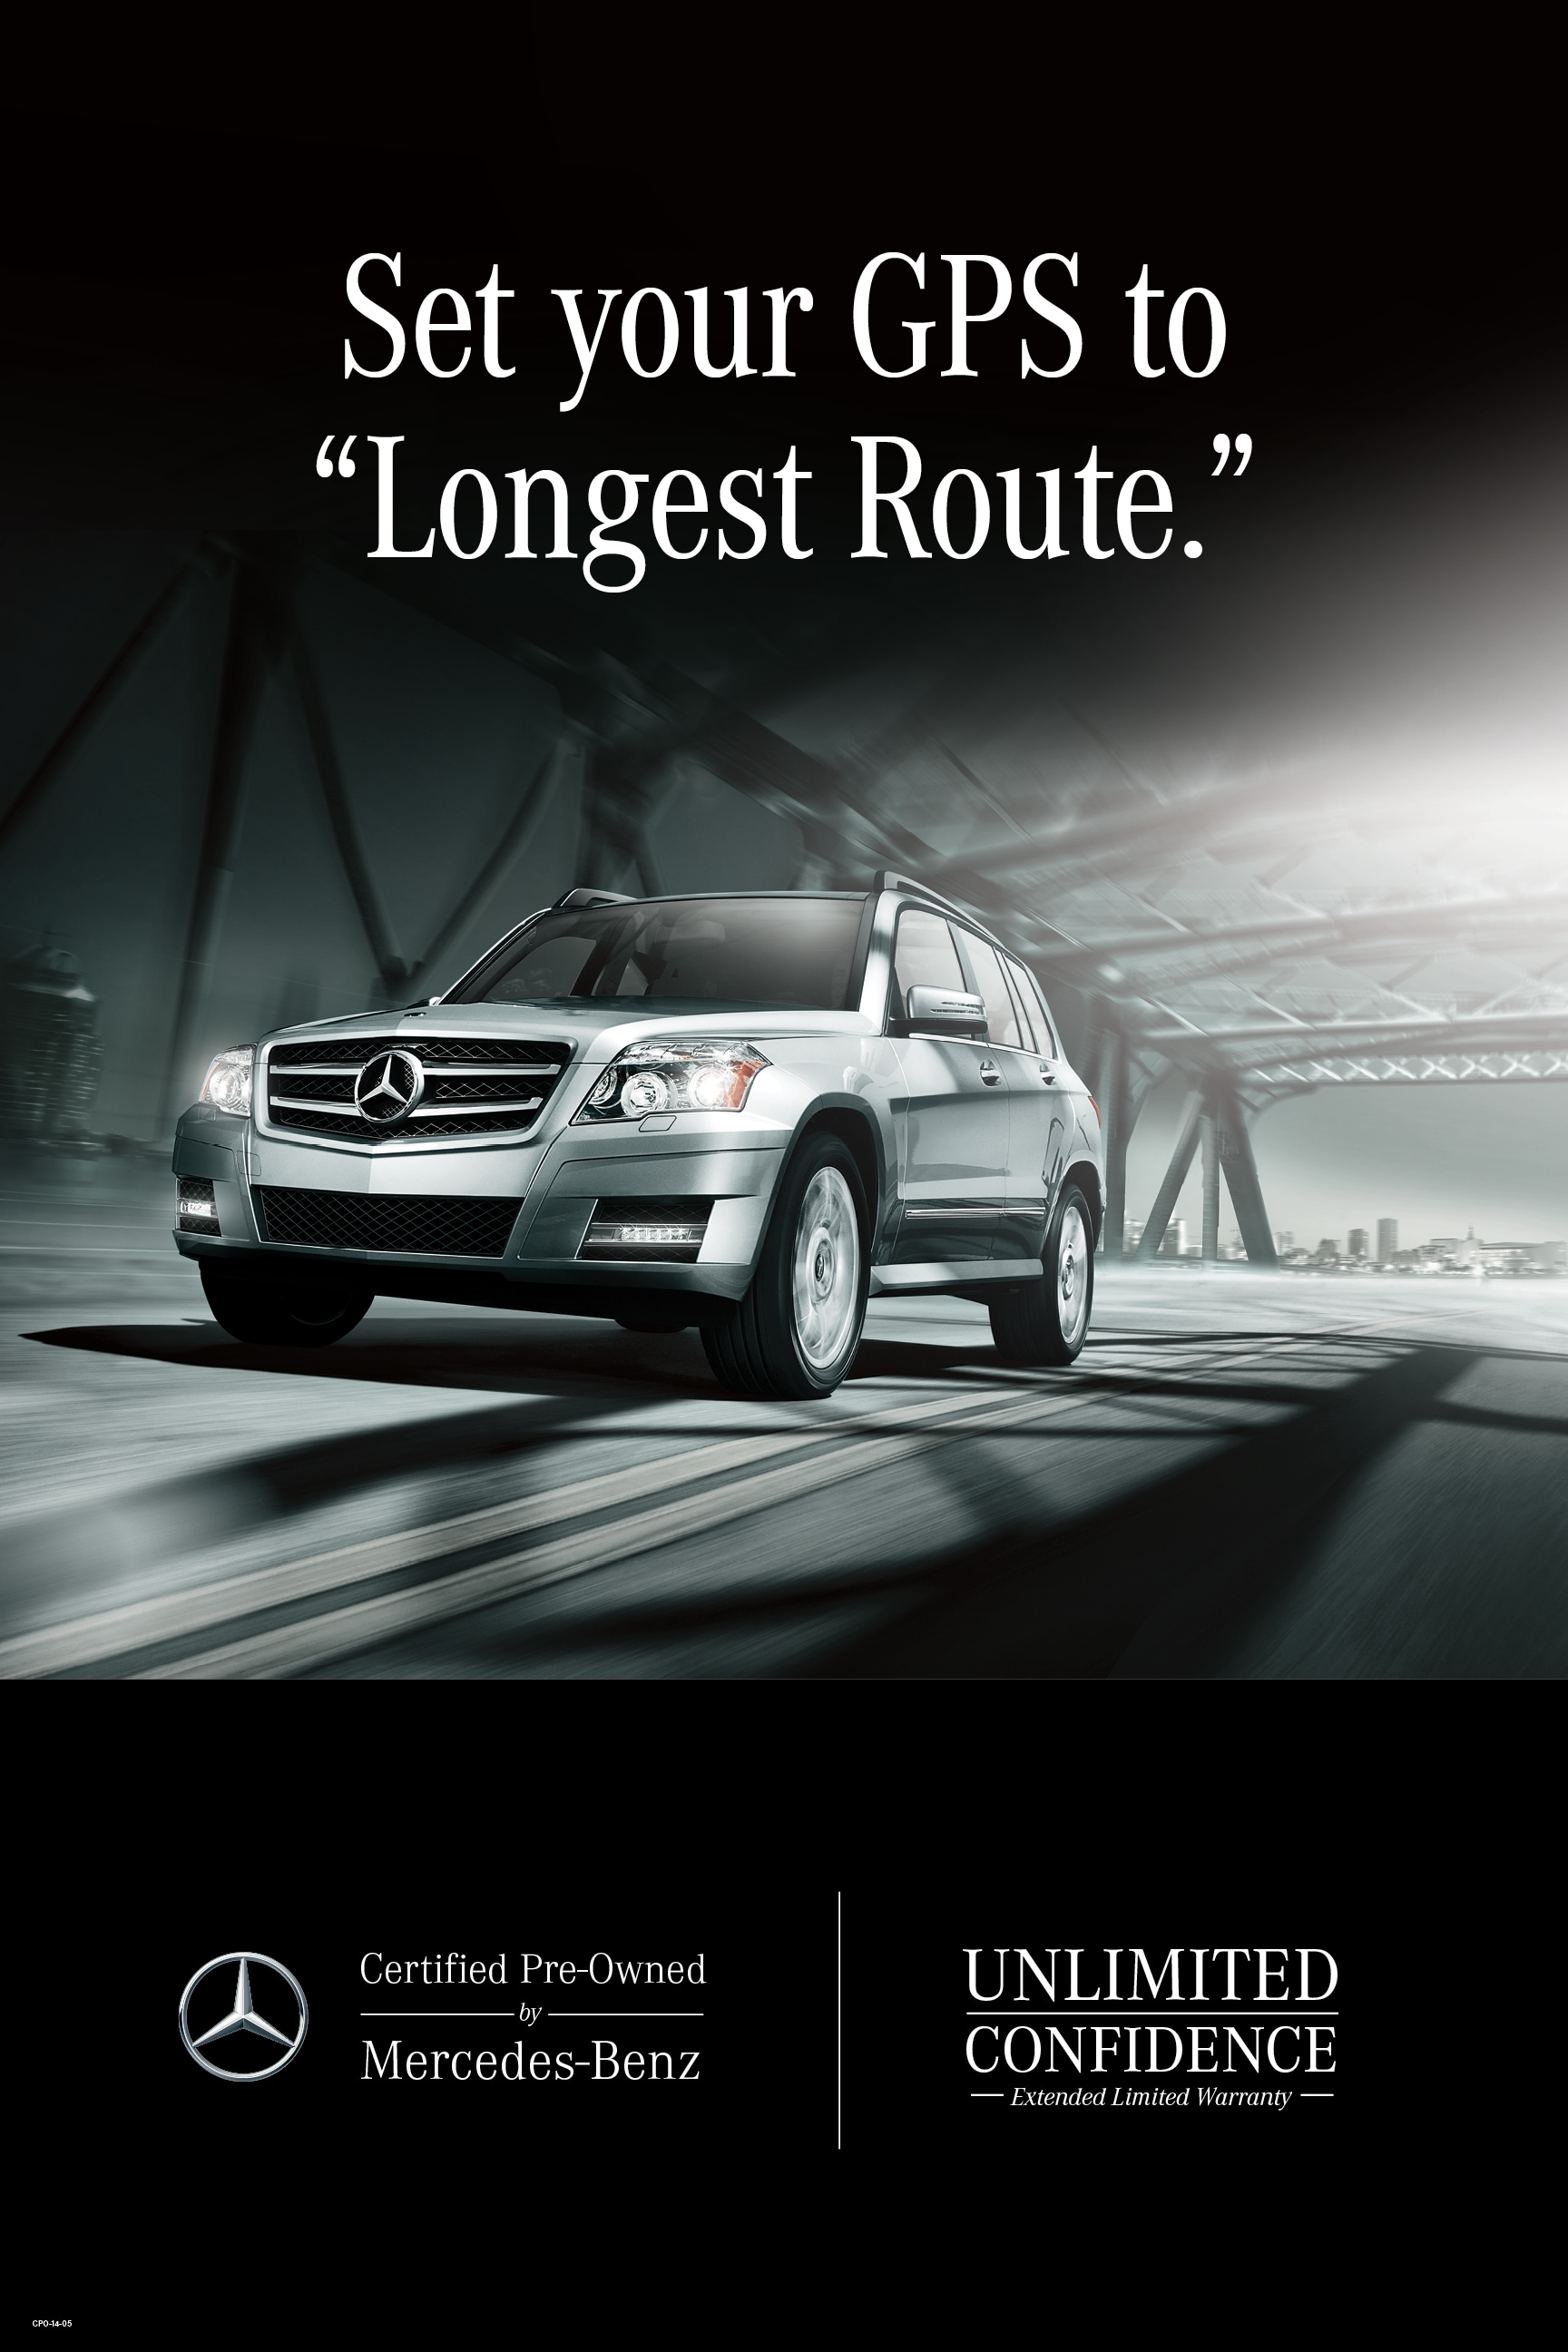 mercedes benz certified pre owned. Cars Review. Best American Auto & Cars Review